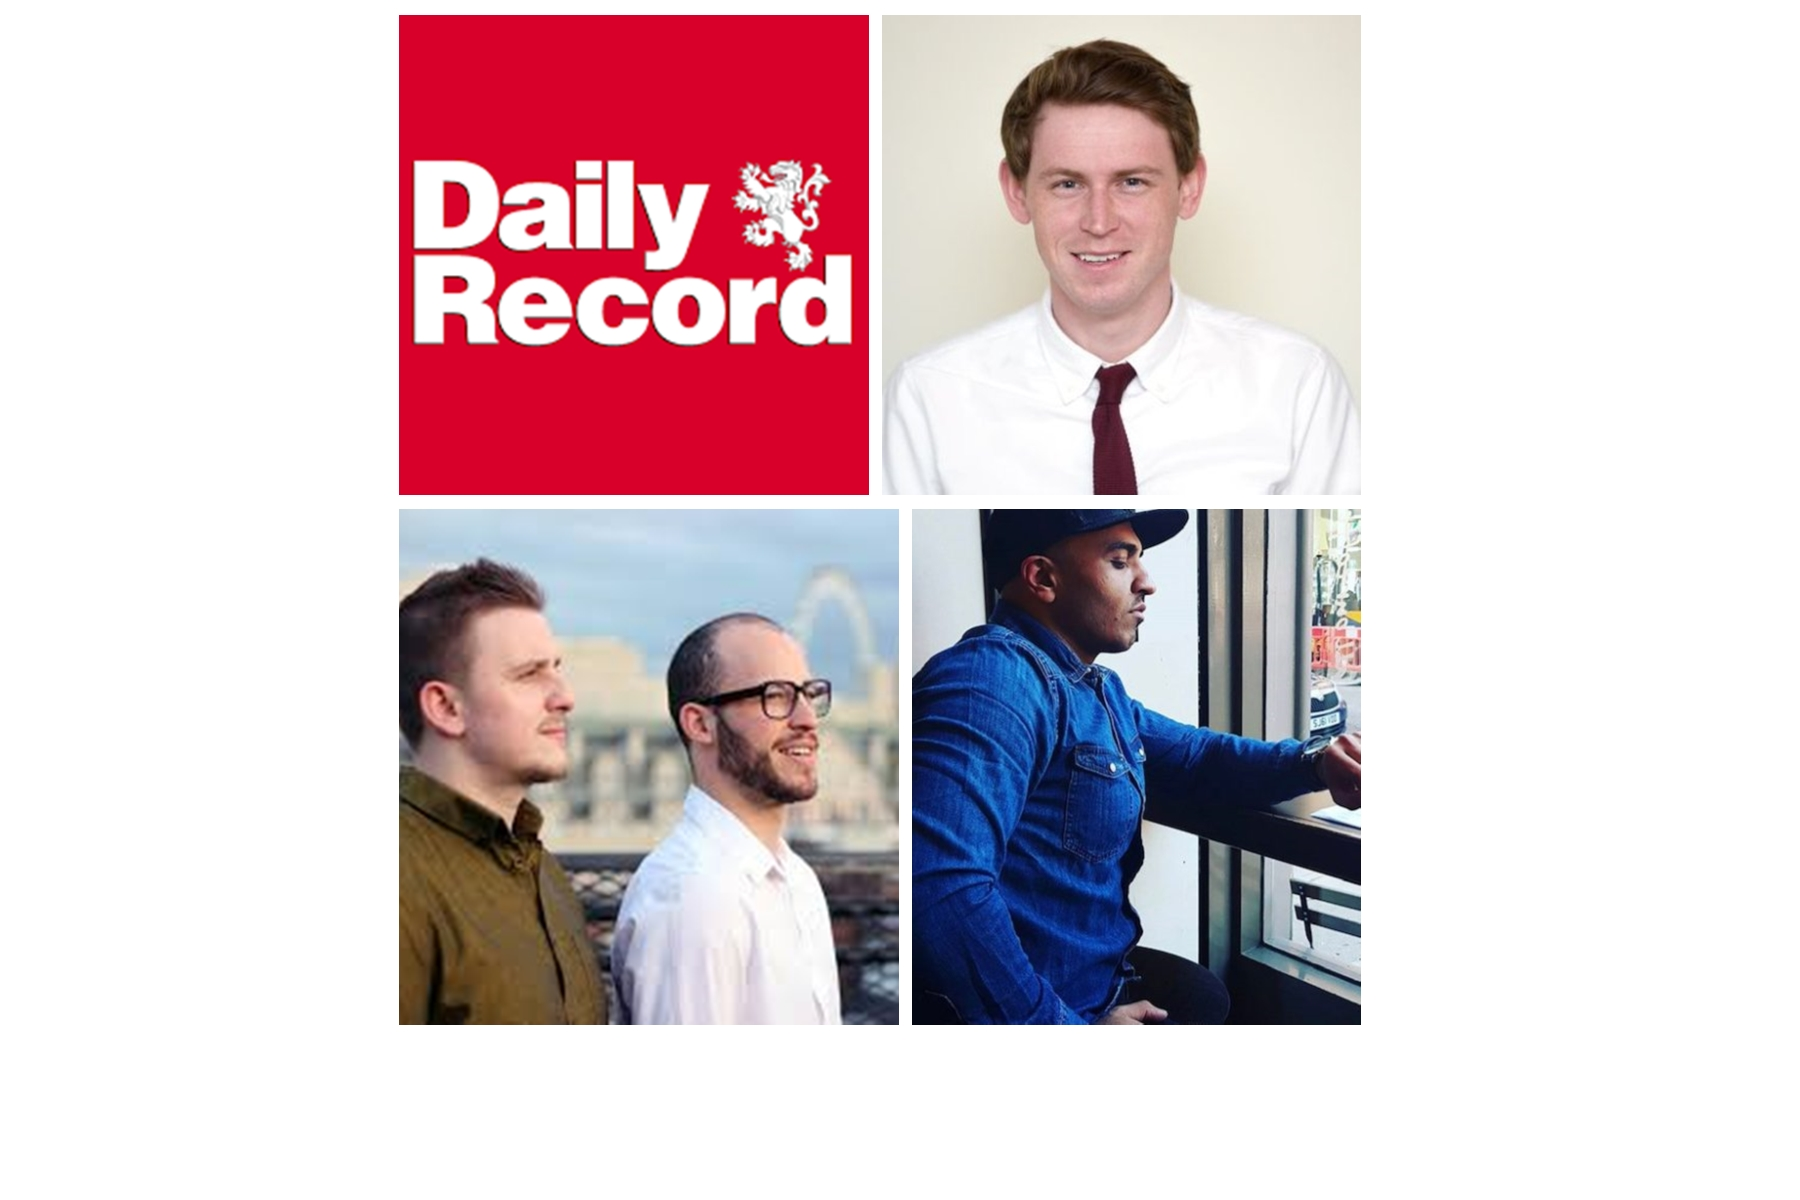 """Sleazy Creep Reporter Peter Davidson (Daily Record) Writes Trash Inaccurate Article; """"YouTube Deletes Videos After BBC Investigation"""""""